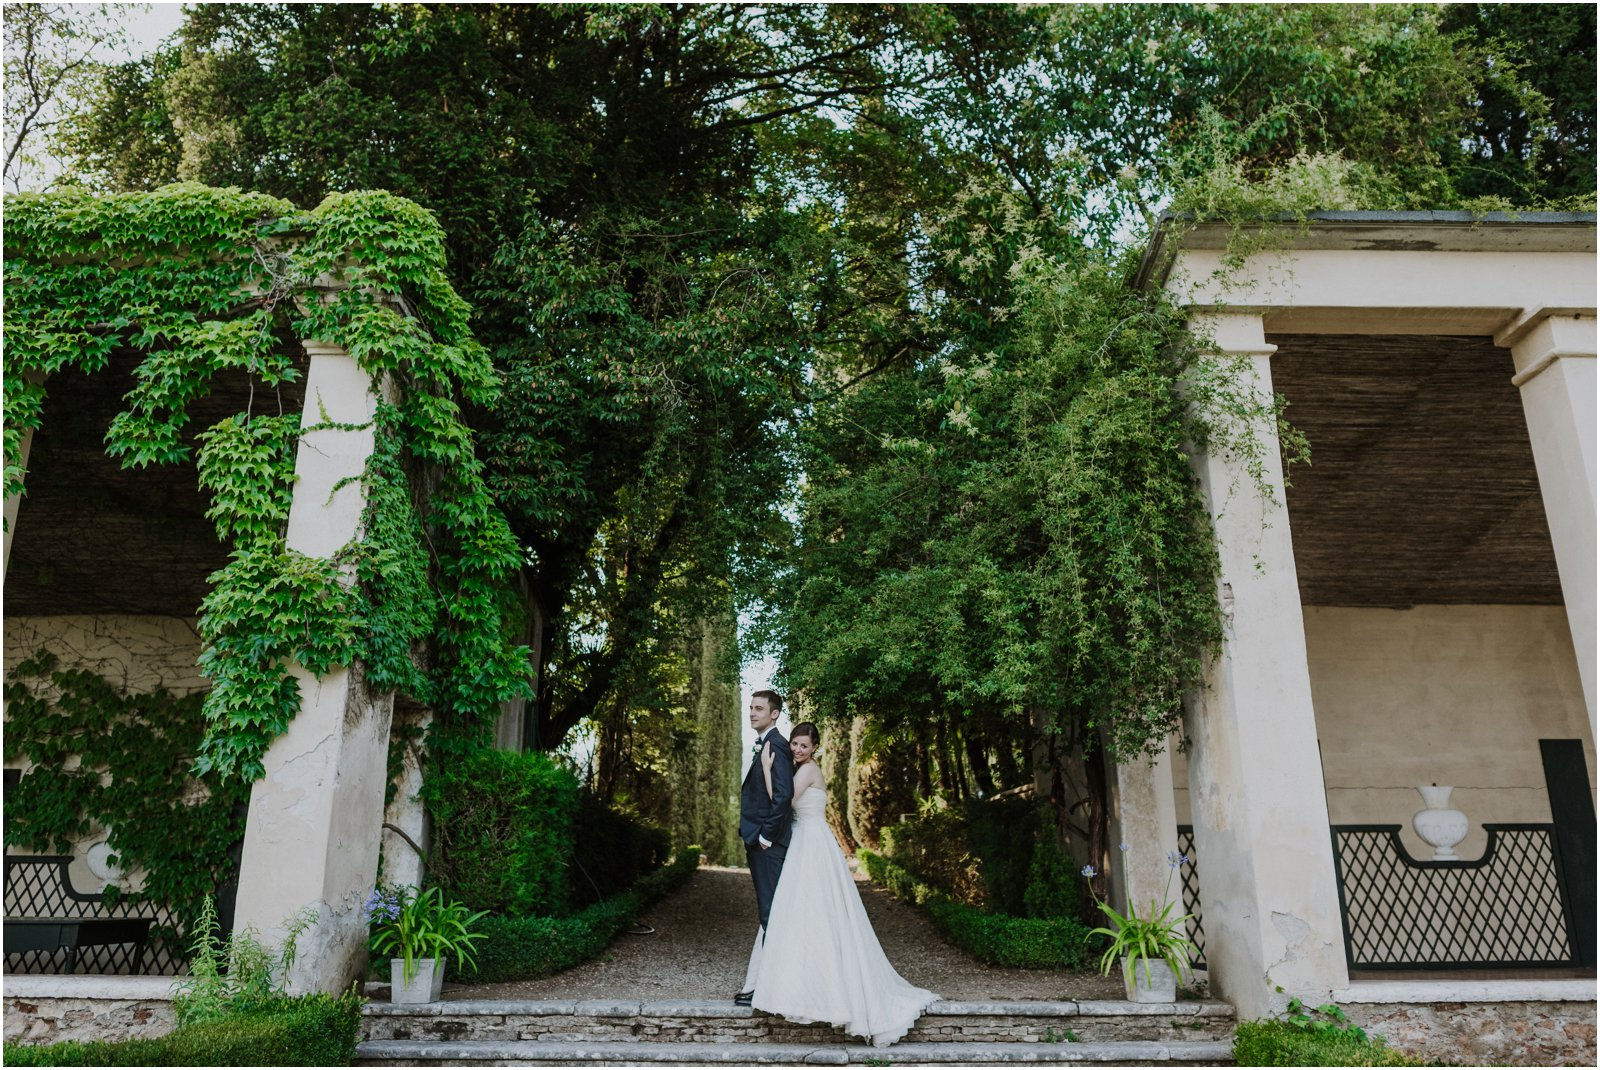 veronasposi foto e video matrimonio verona_0586